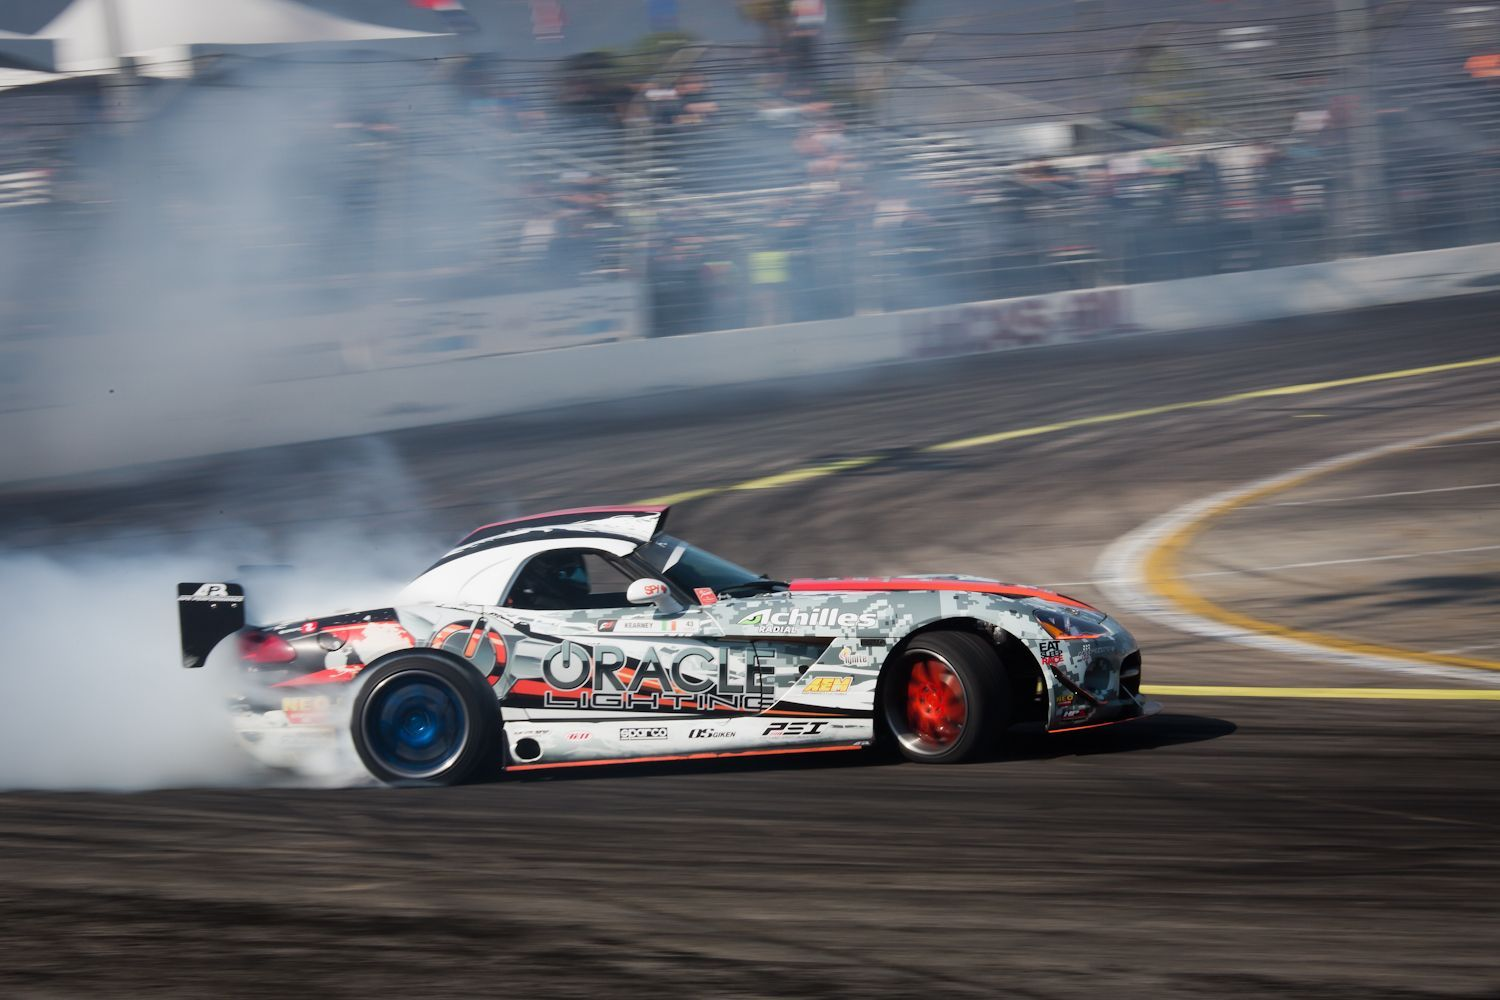 Exedy Racing Team In Formula Drift Formula Drift Pinterest